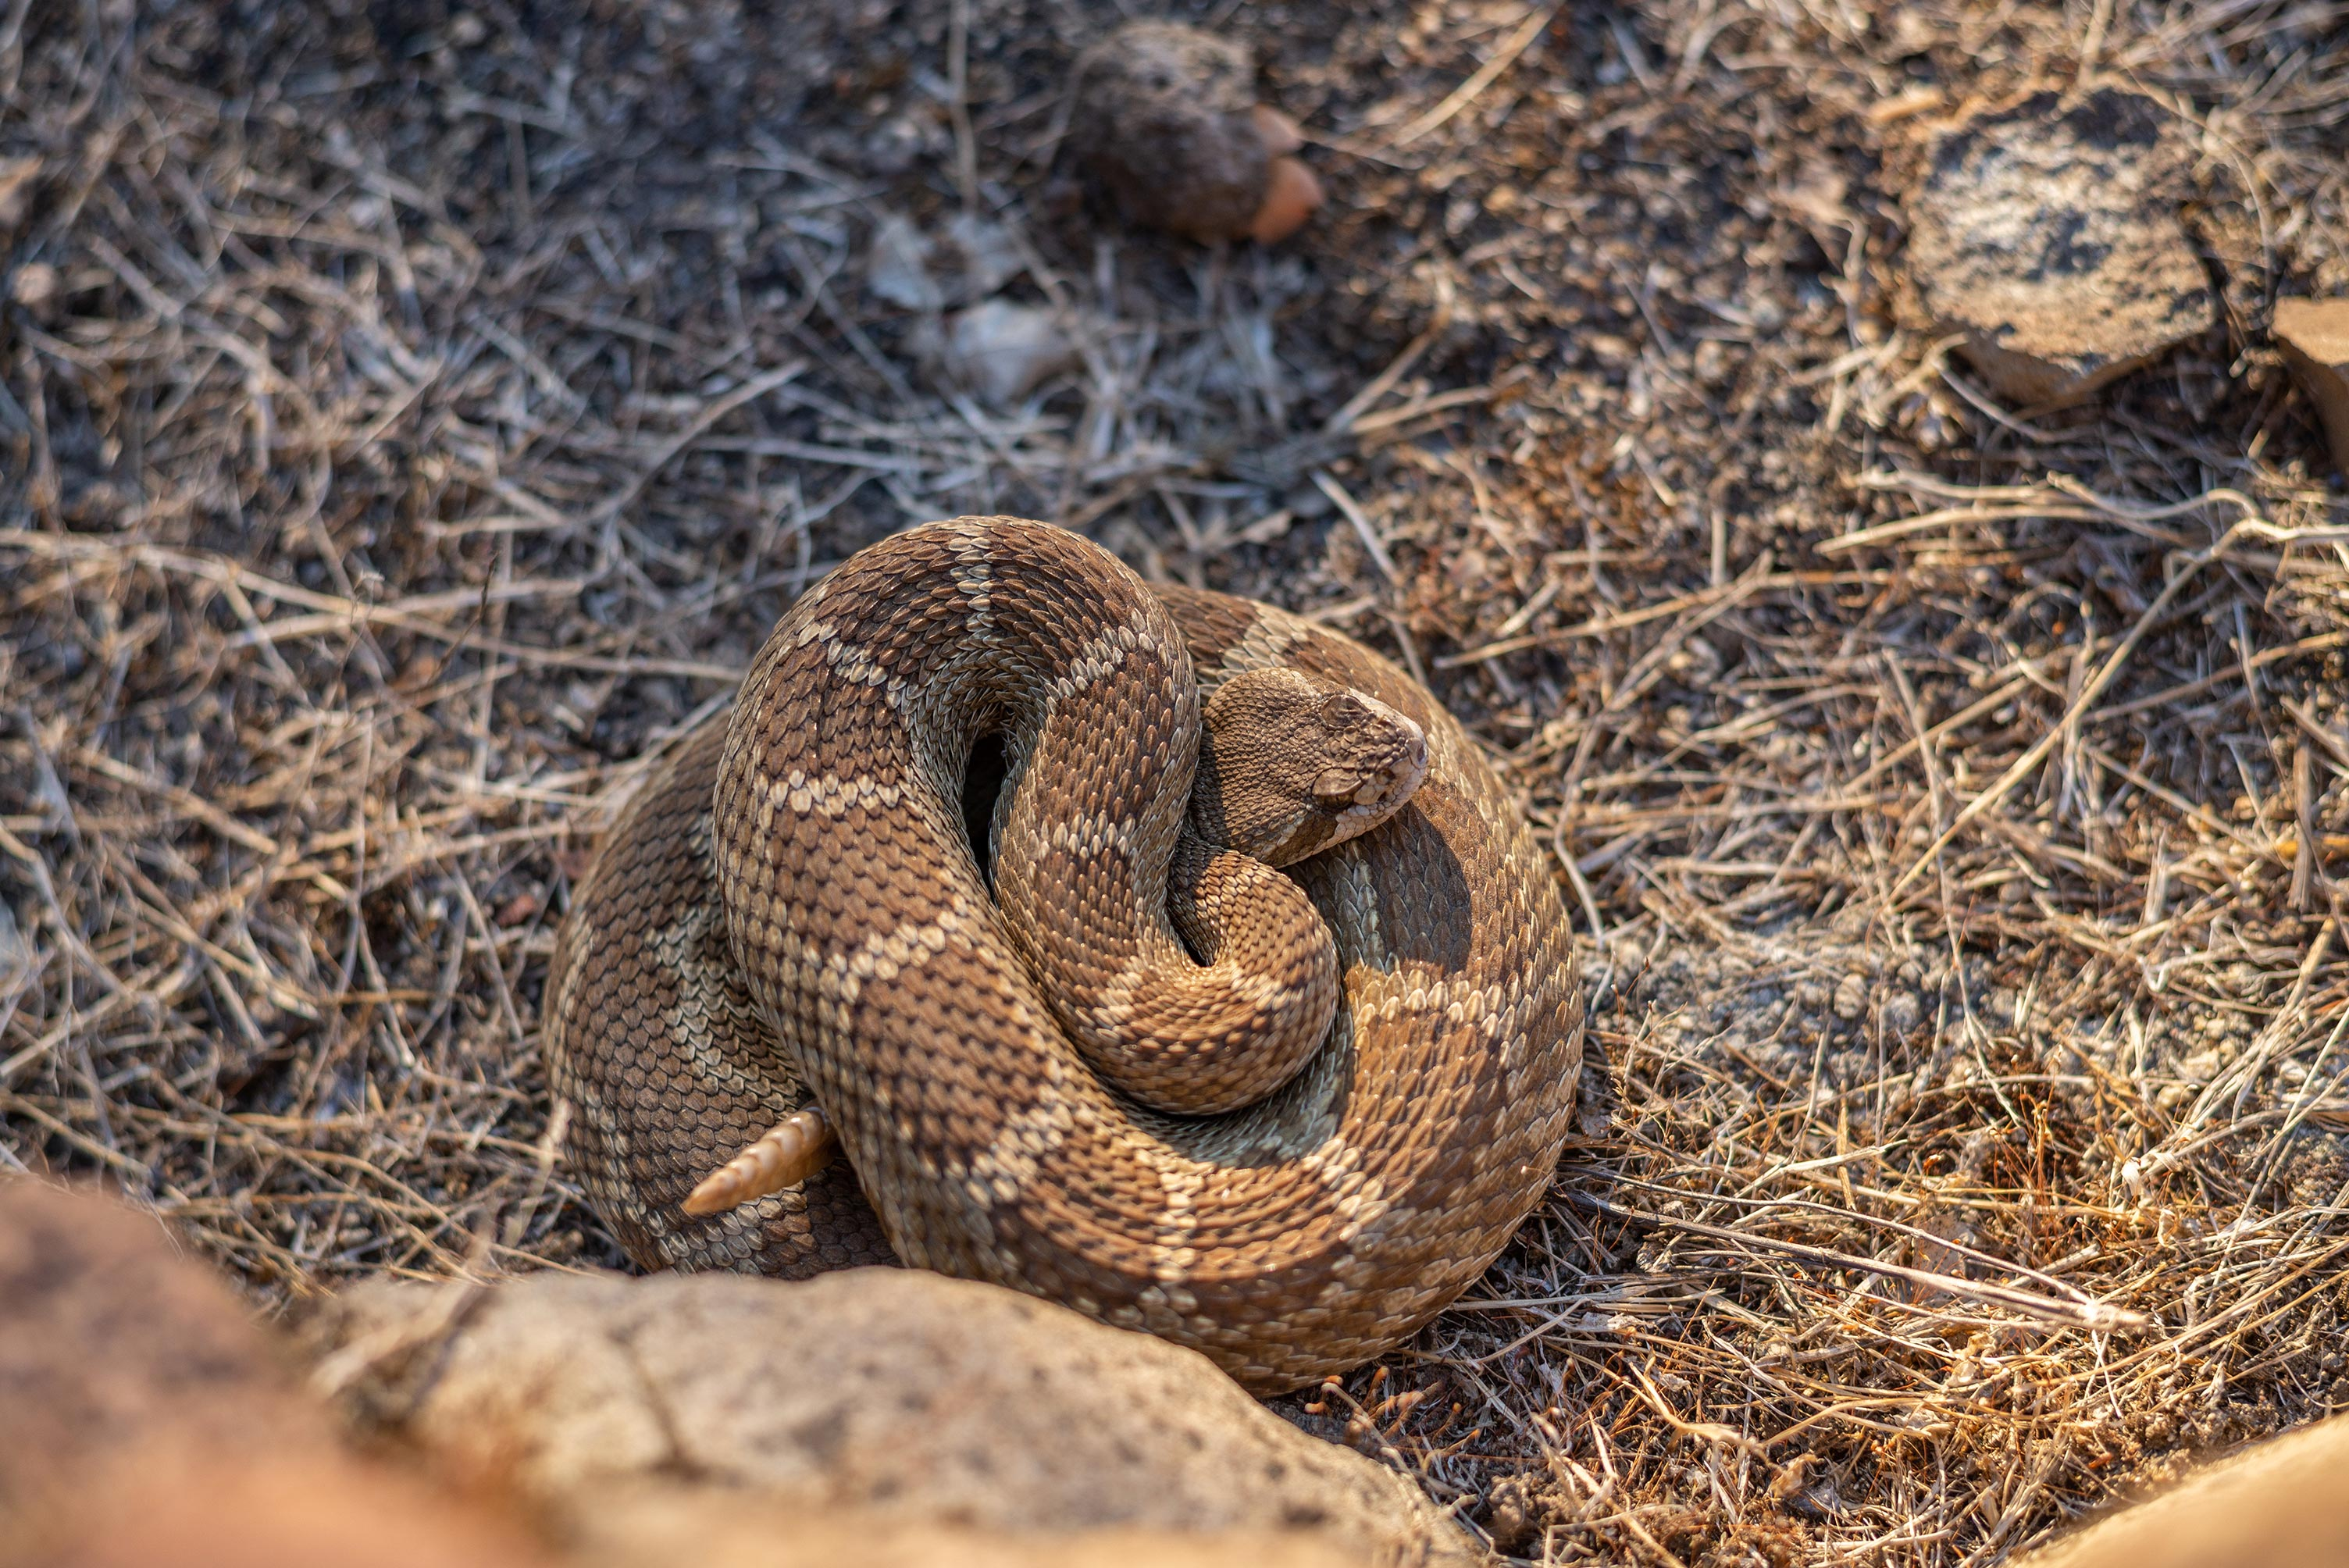 How to Deter Rattlesnakes